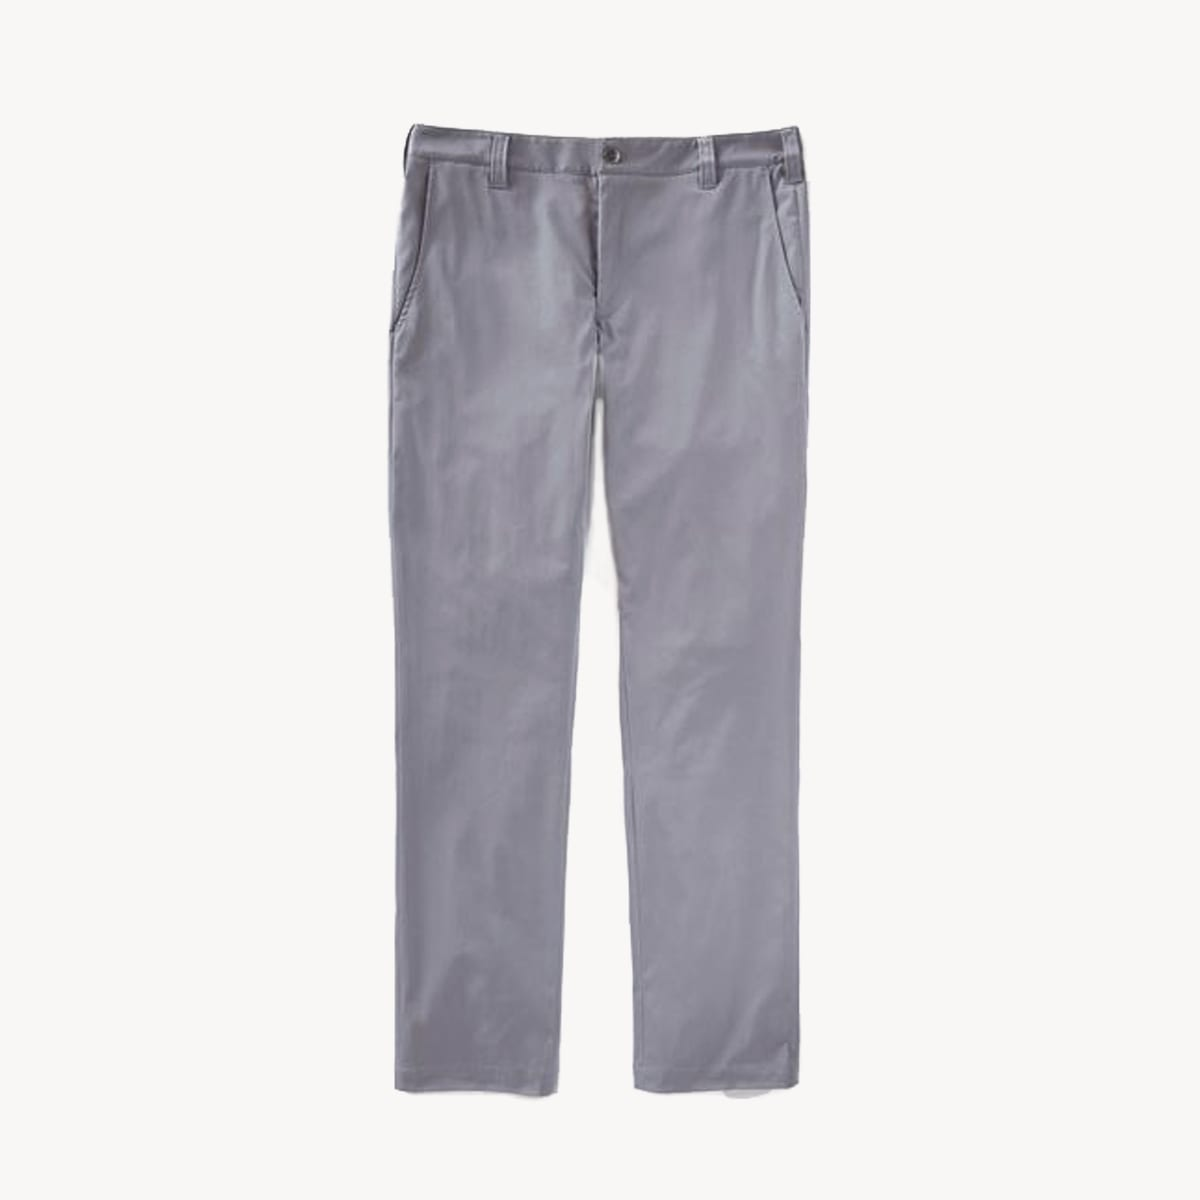 0b778dc426 Best Business Travel Pants: Bluffworks Tailored Fit Chino ($98)